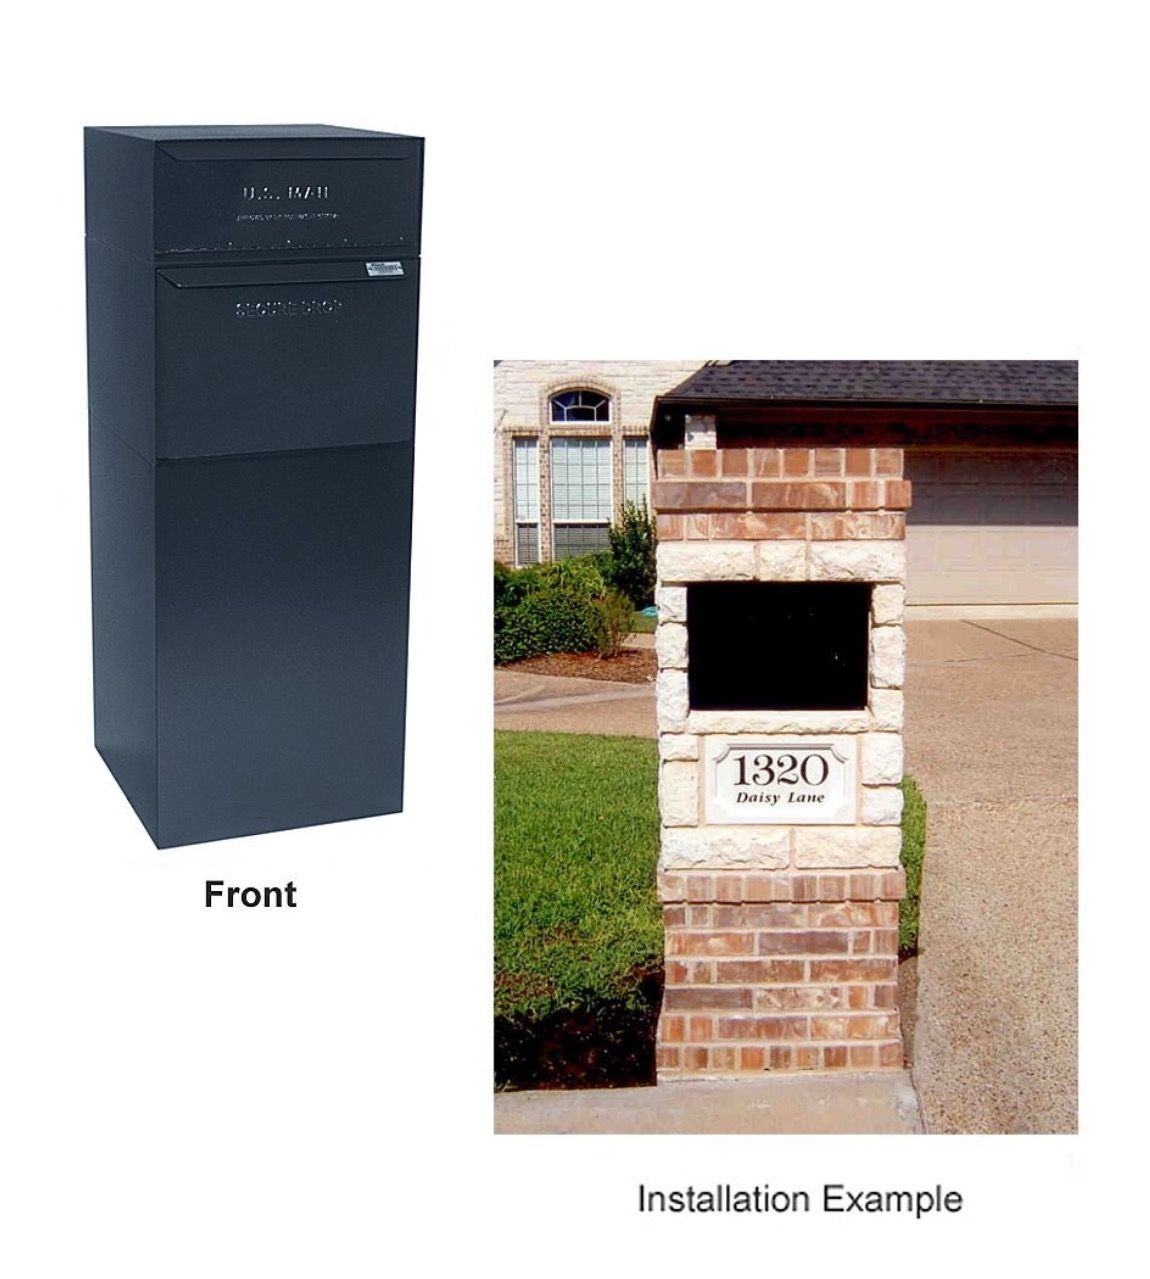 Mailbox With Package Compartment Dvault Full Service Vault Dvcs0015 Secure Curbside Mailbox Package Drop With Security Mailbox Building A New Home Letter Box